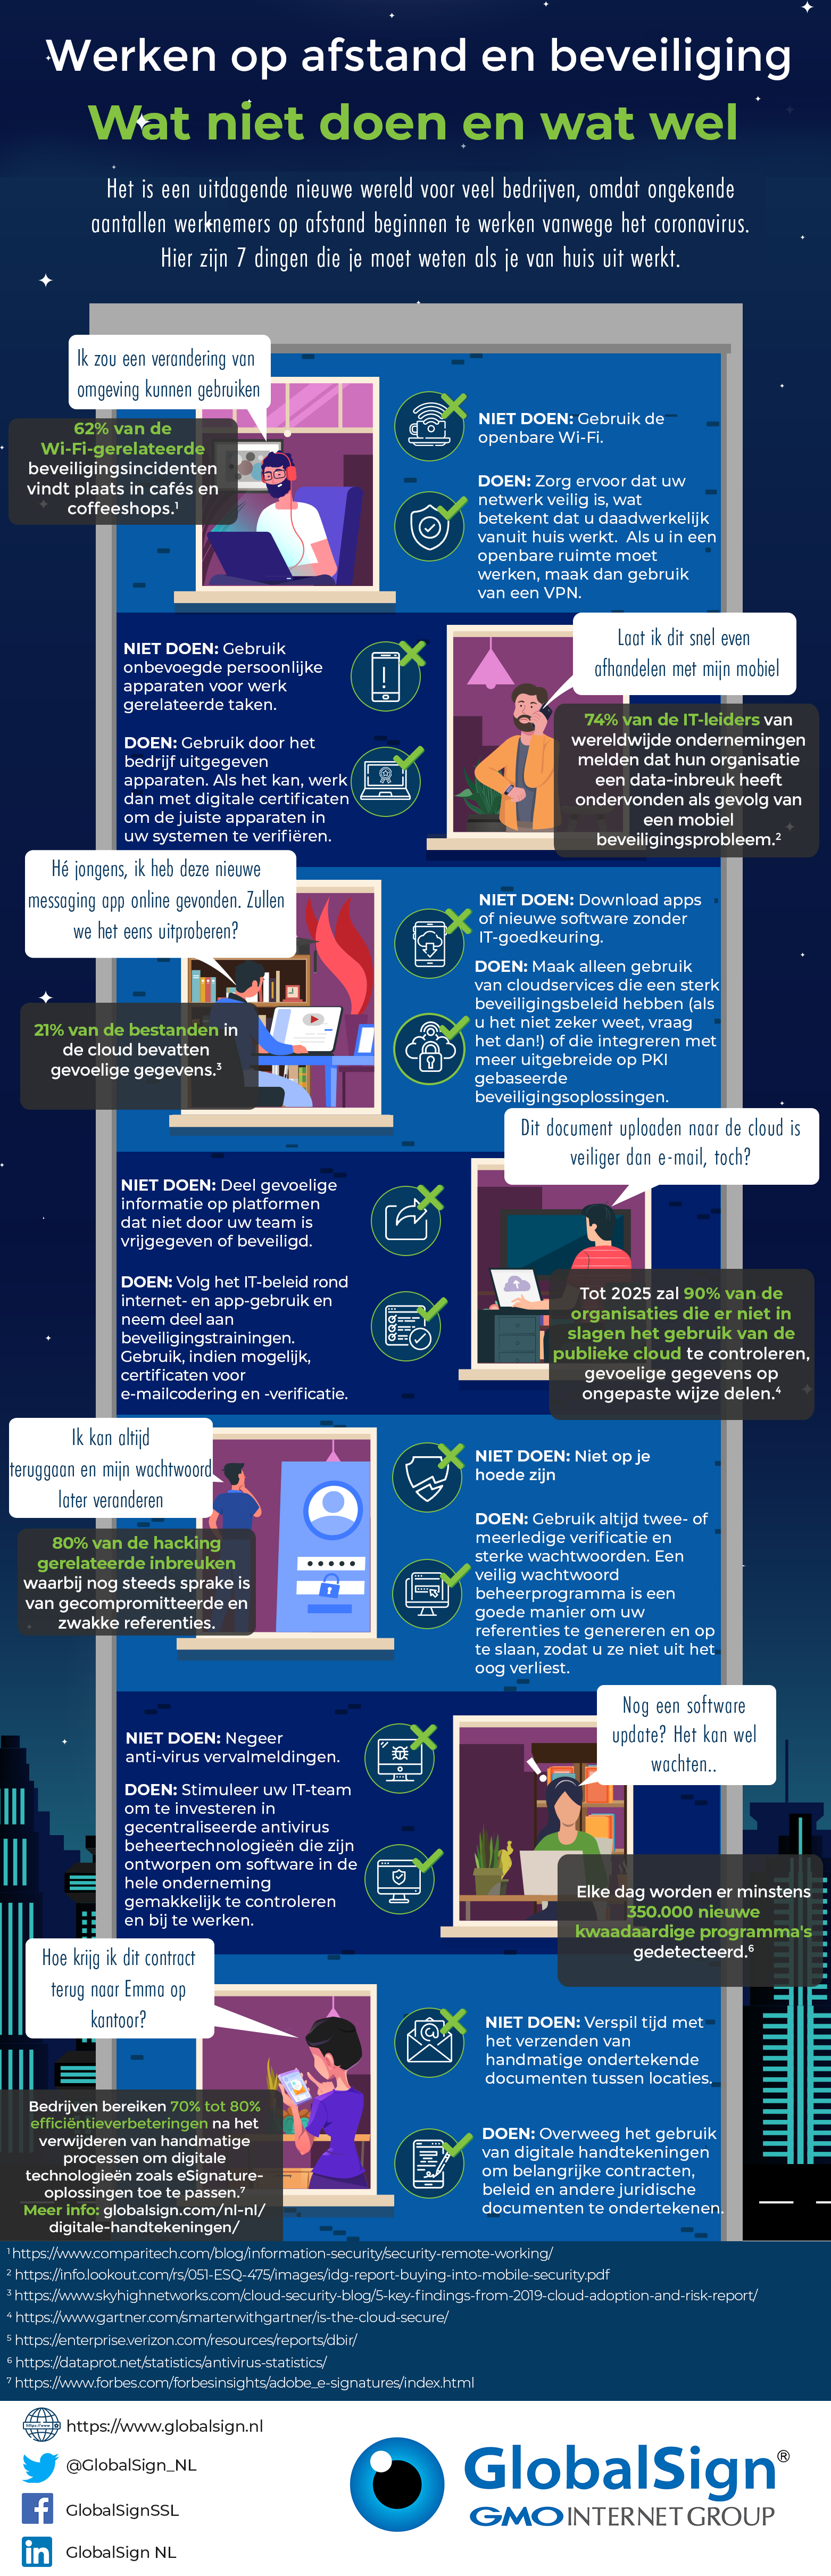 GlobalSign Remote Work Infographic for Web